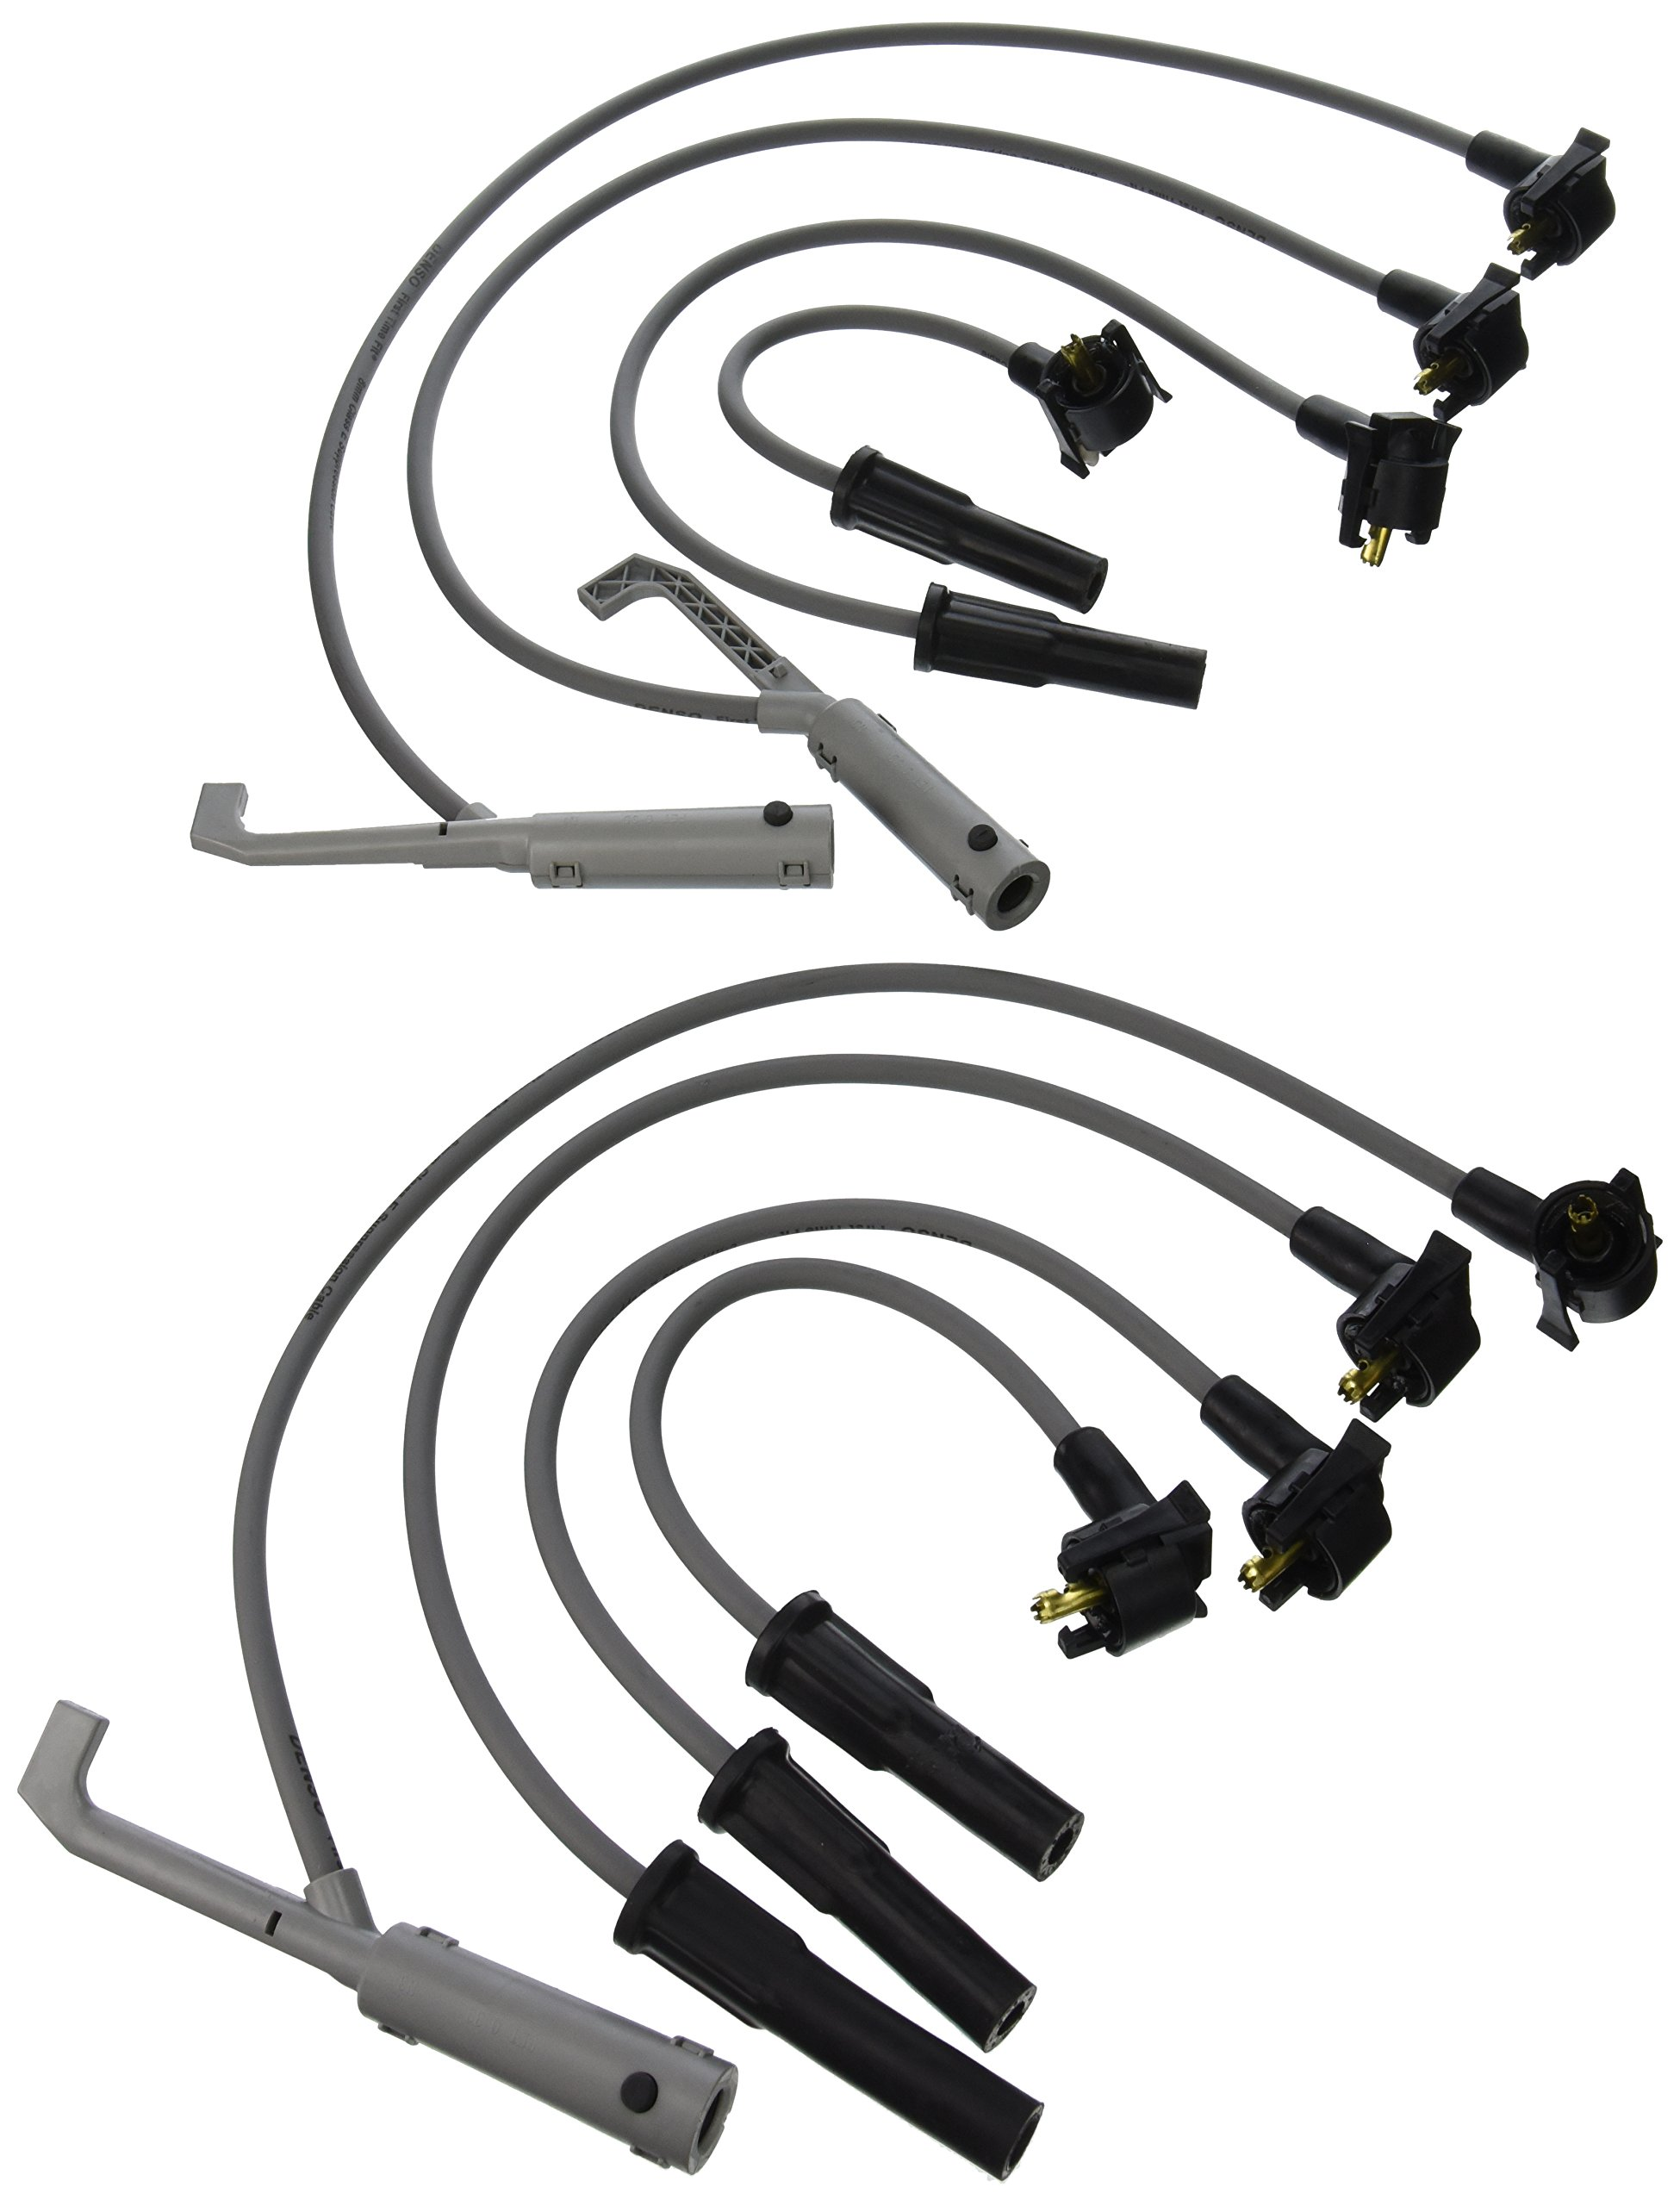 Denso 671-4056 Original Equipment Replacement Wires